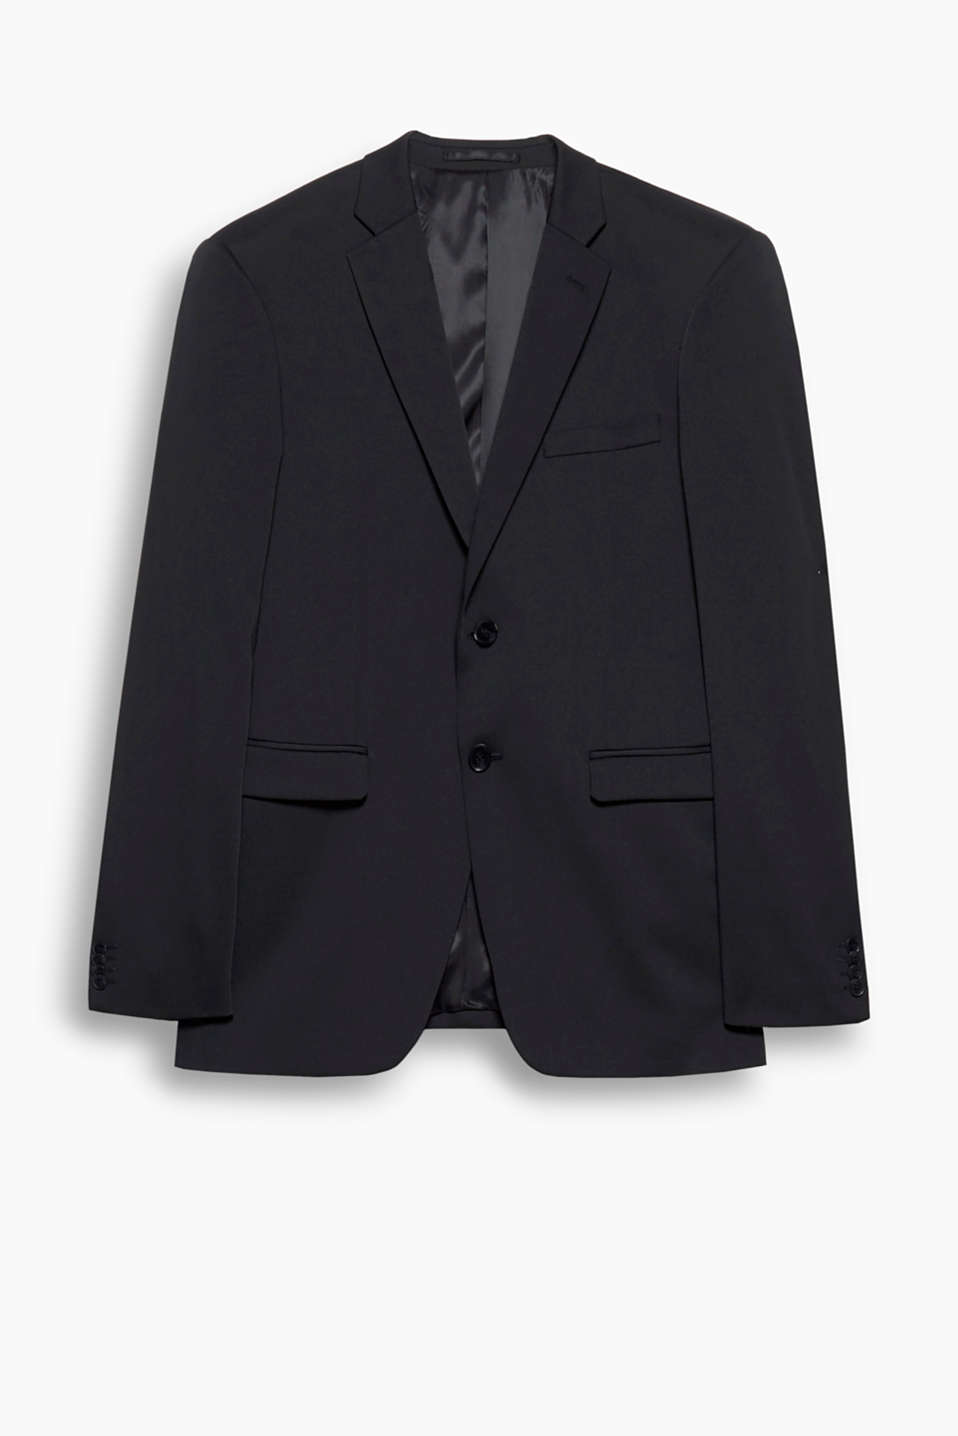 A classic that no wardrobe should be without: this sports jacket with two-button fastening and a narrow lapel.